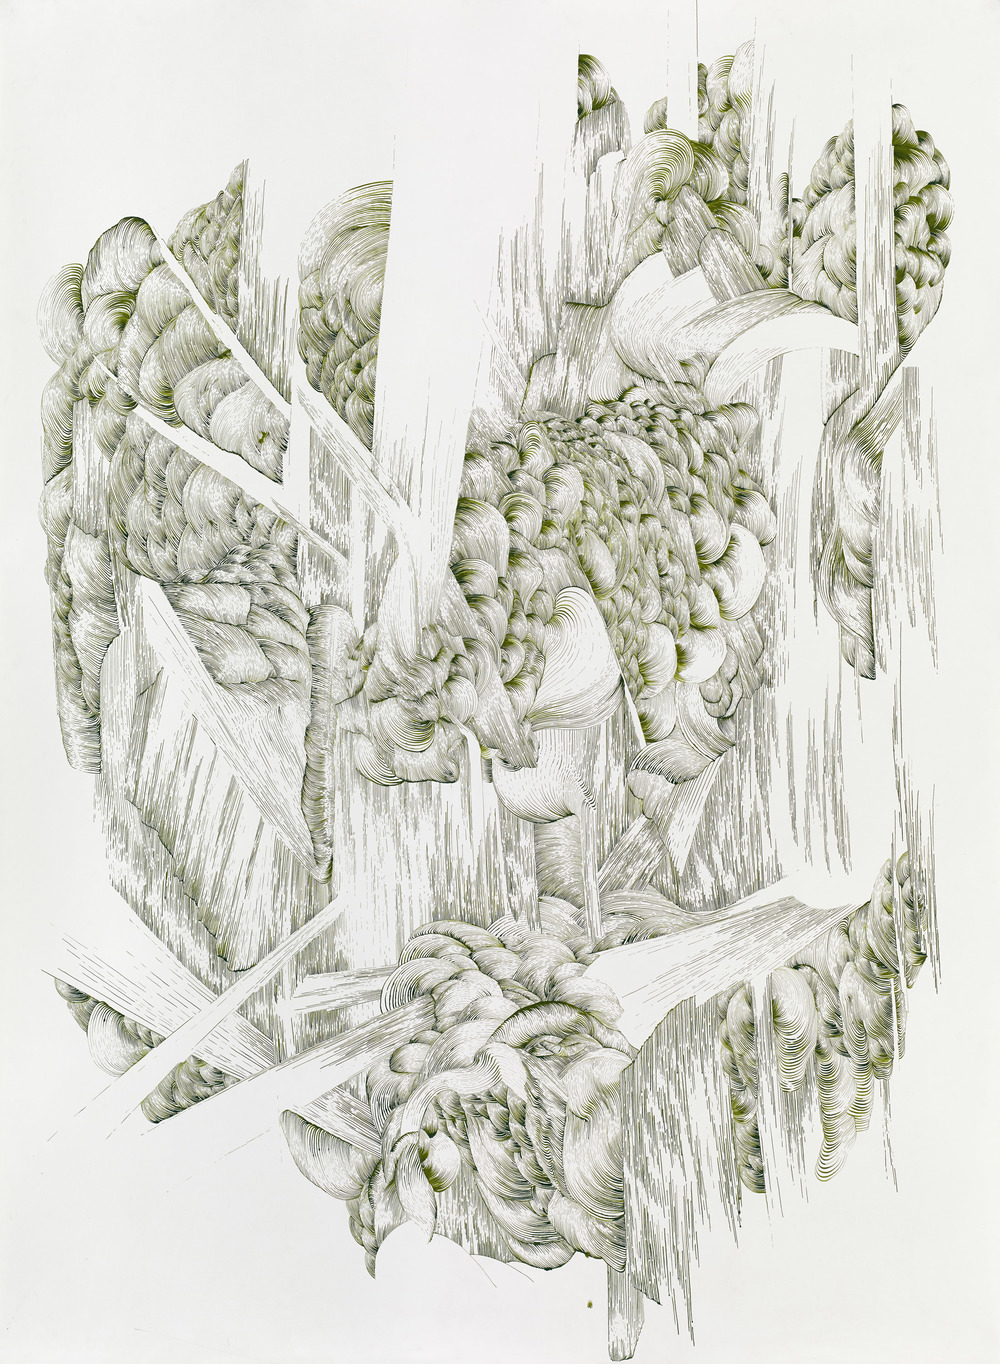 Bettina Krieg | P 130 Untitled | Green Ink on Paper | 120 x 100 cm | 2013